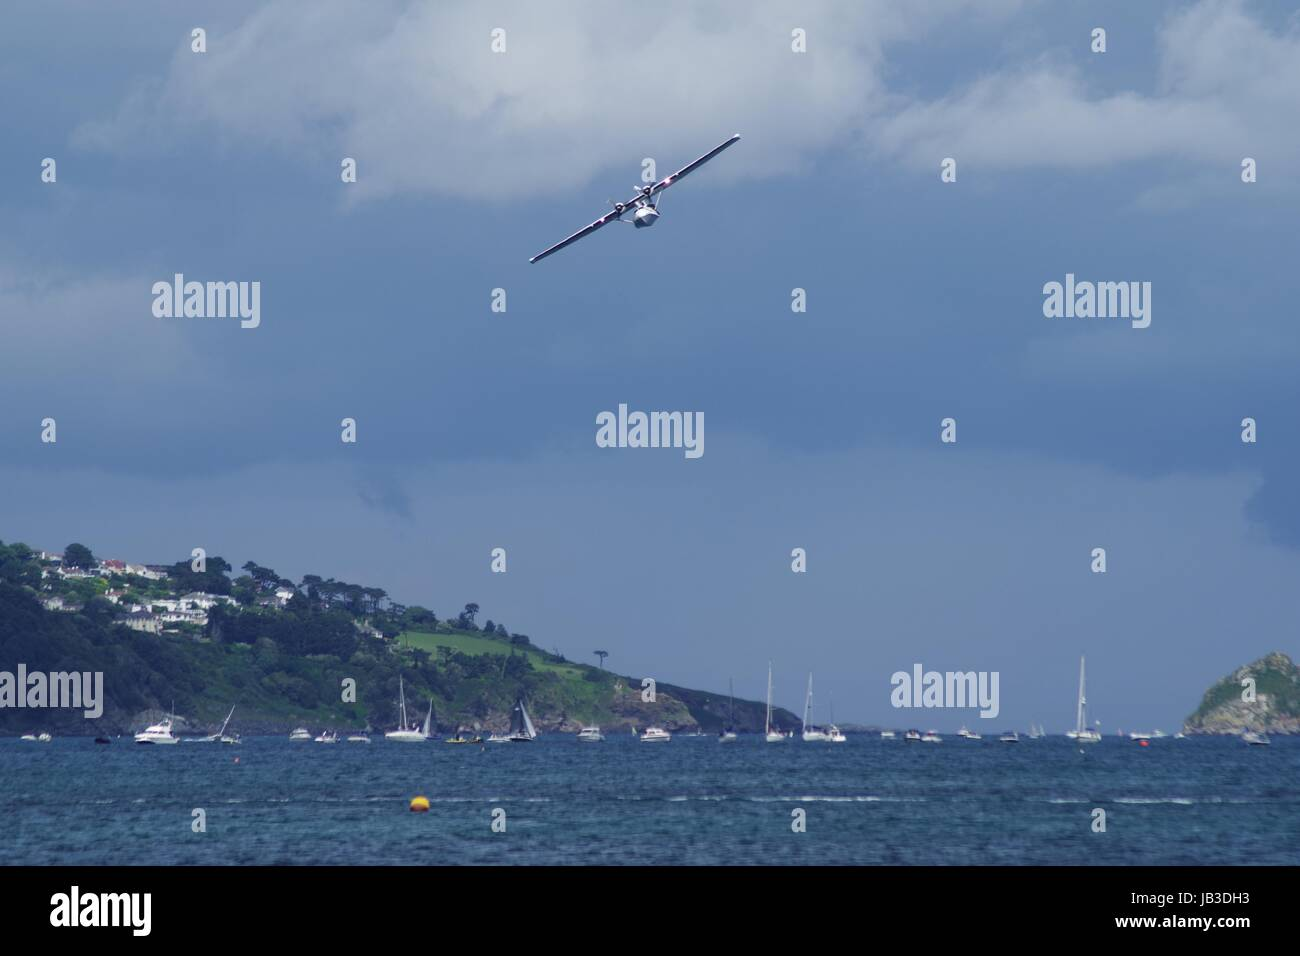 Catalina Flying Boat, Torbay Airshow 2017, Flying Over Torquay. Devon, UK. - Stock Image